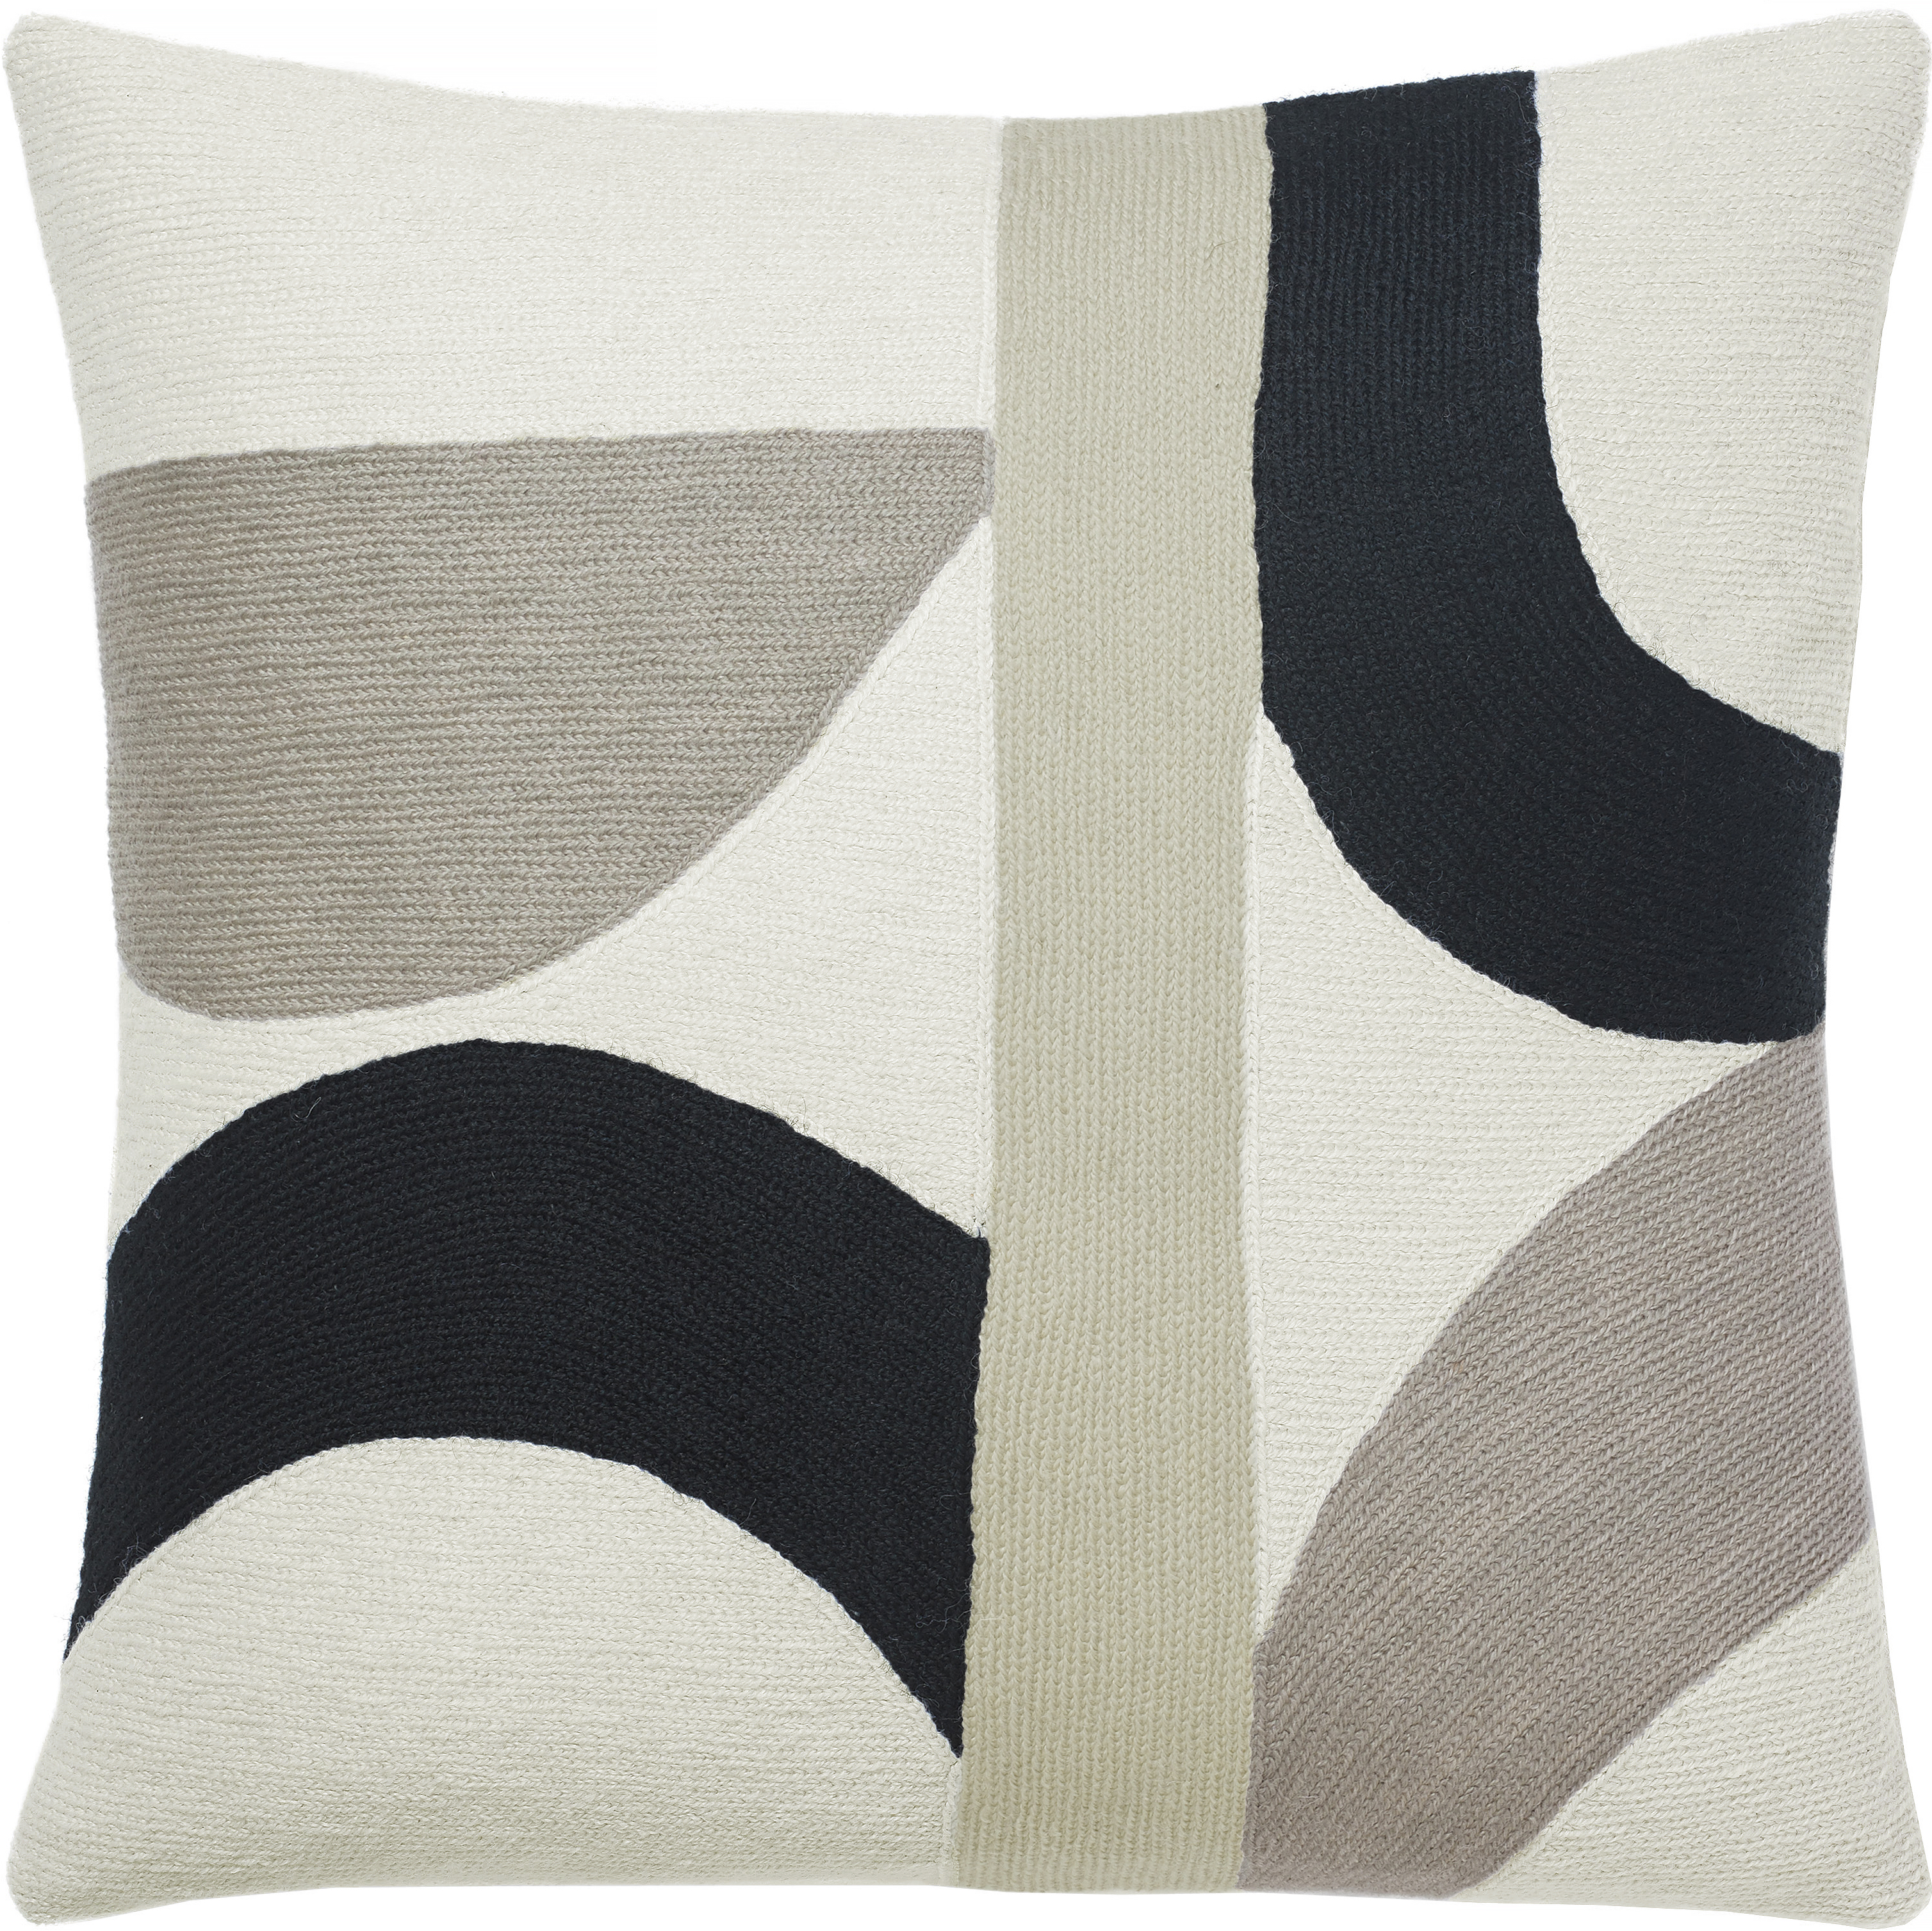 Hand Embroidered Chain Stitch Pillows 18x18 Eclipse Judy Ross Textiles